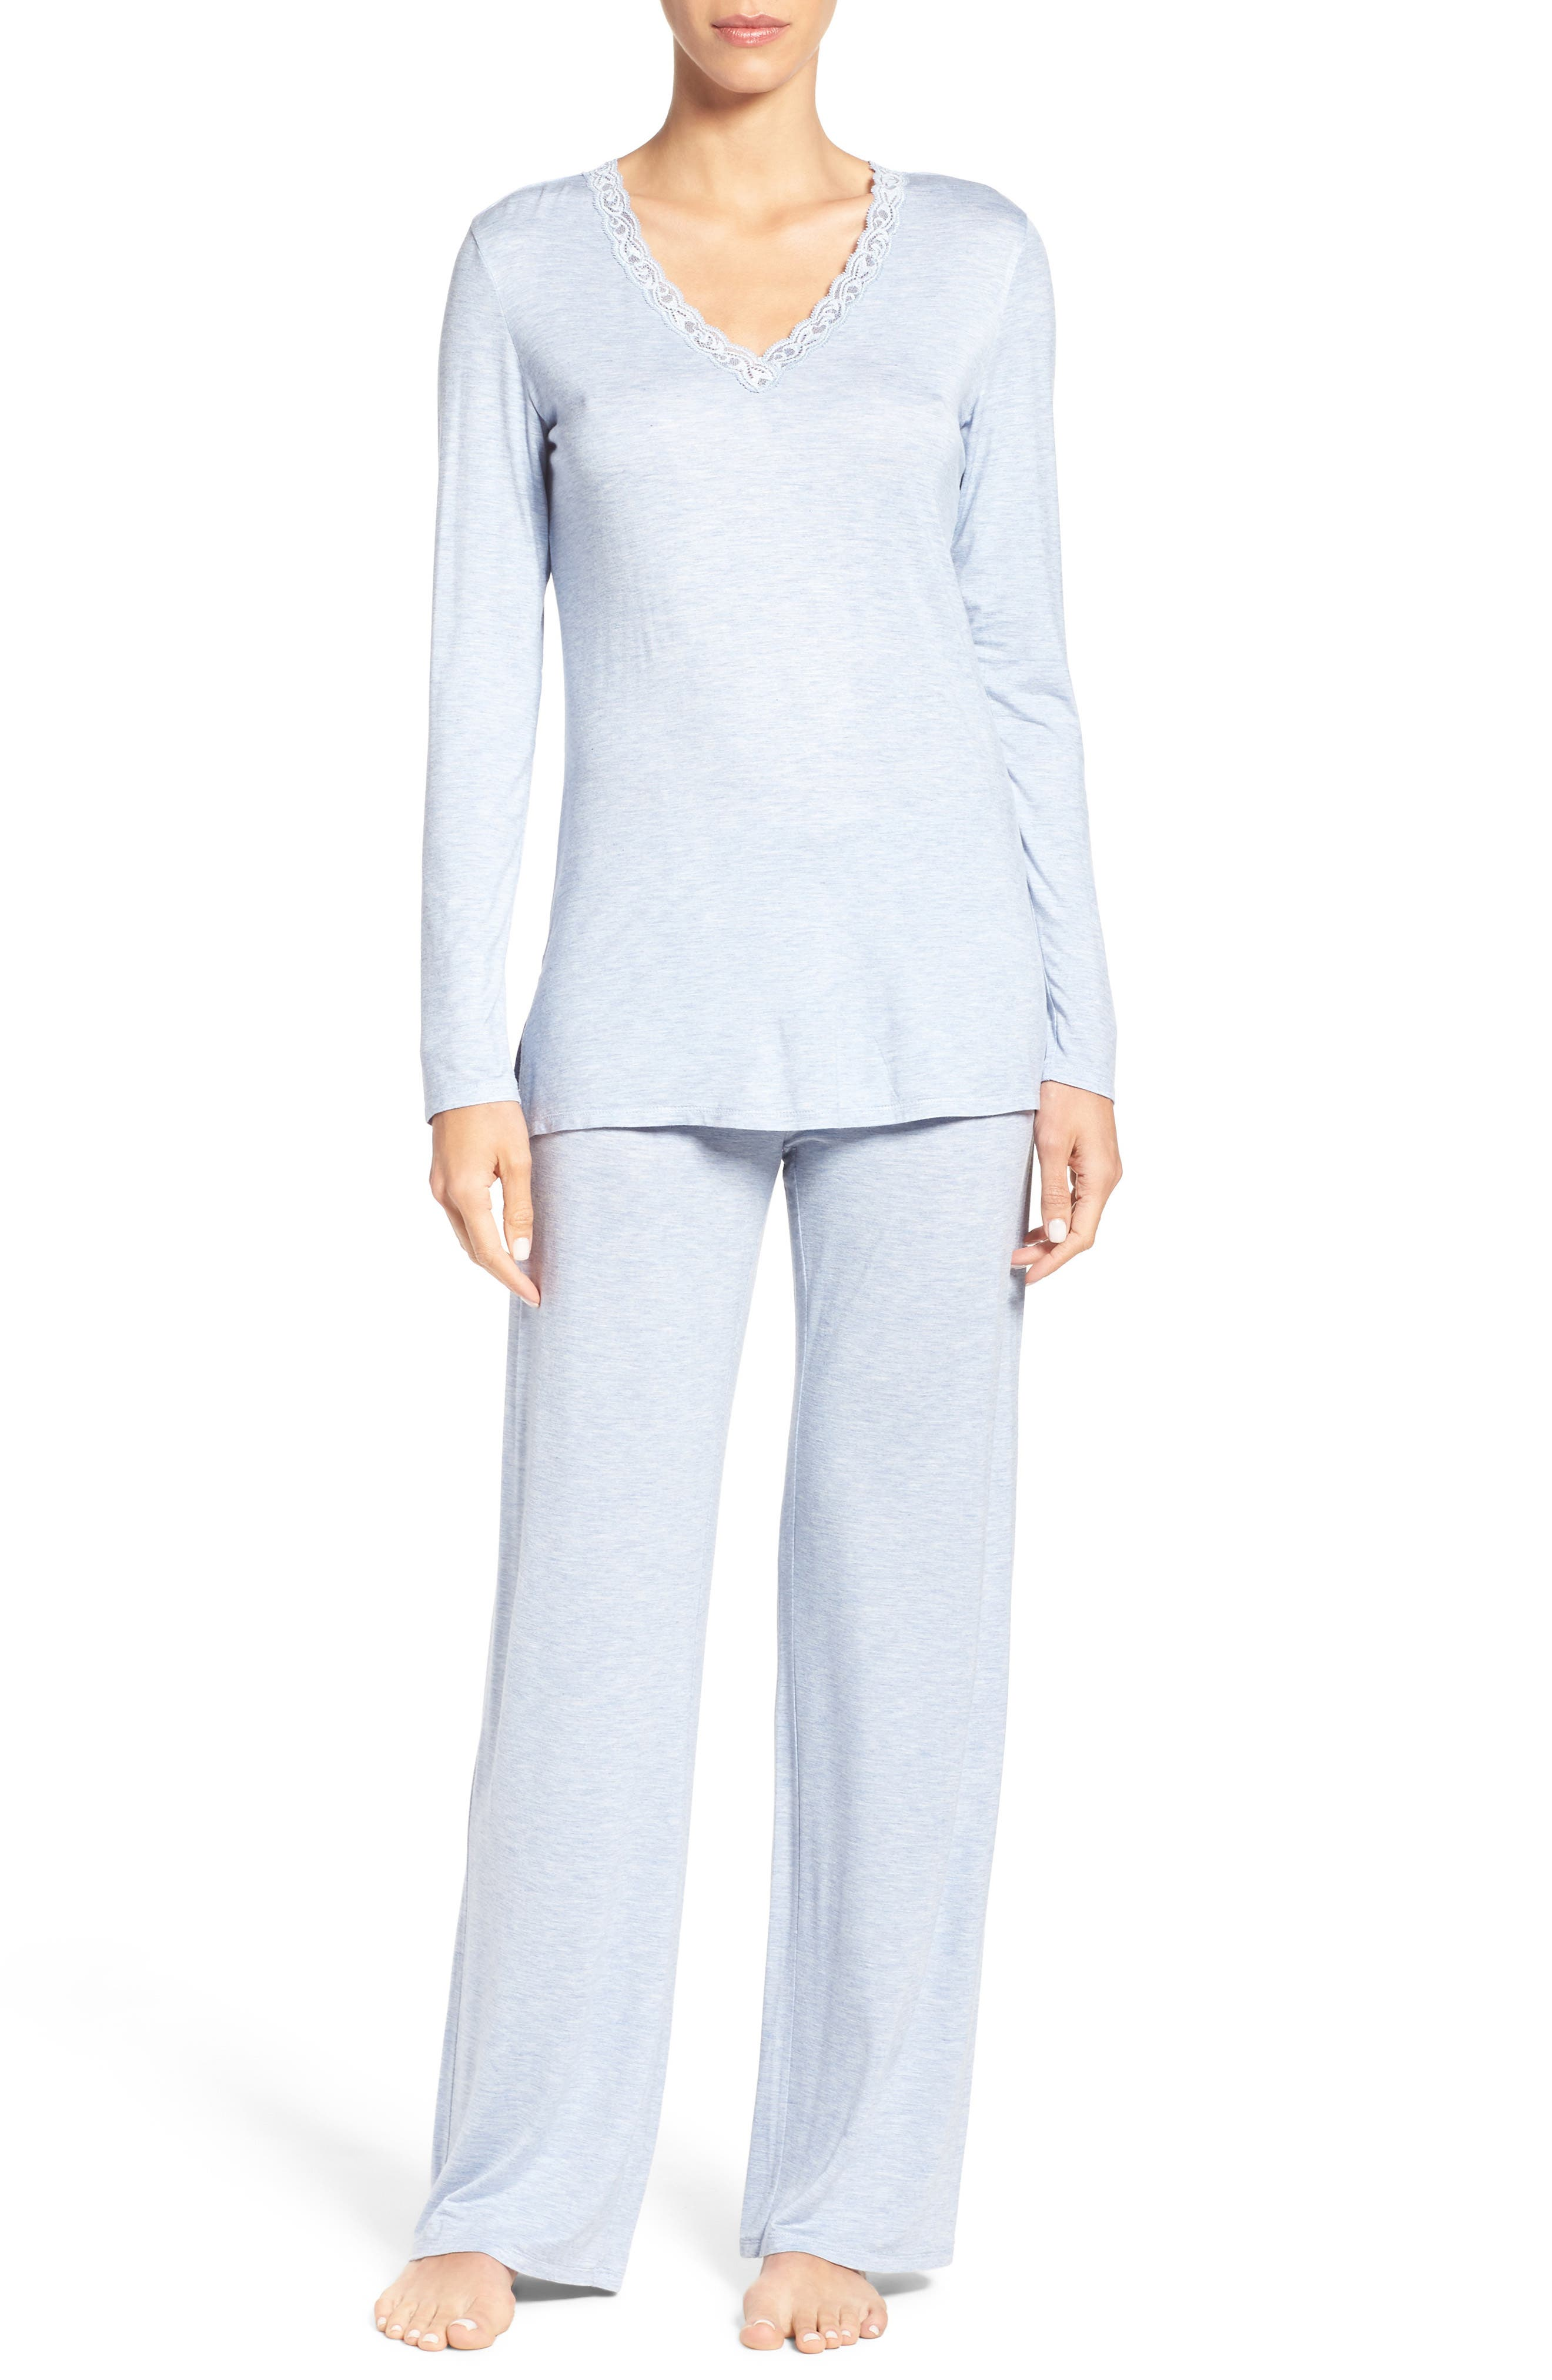 Main Image - Natori Feathers Pajamas